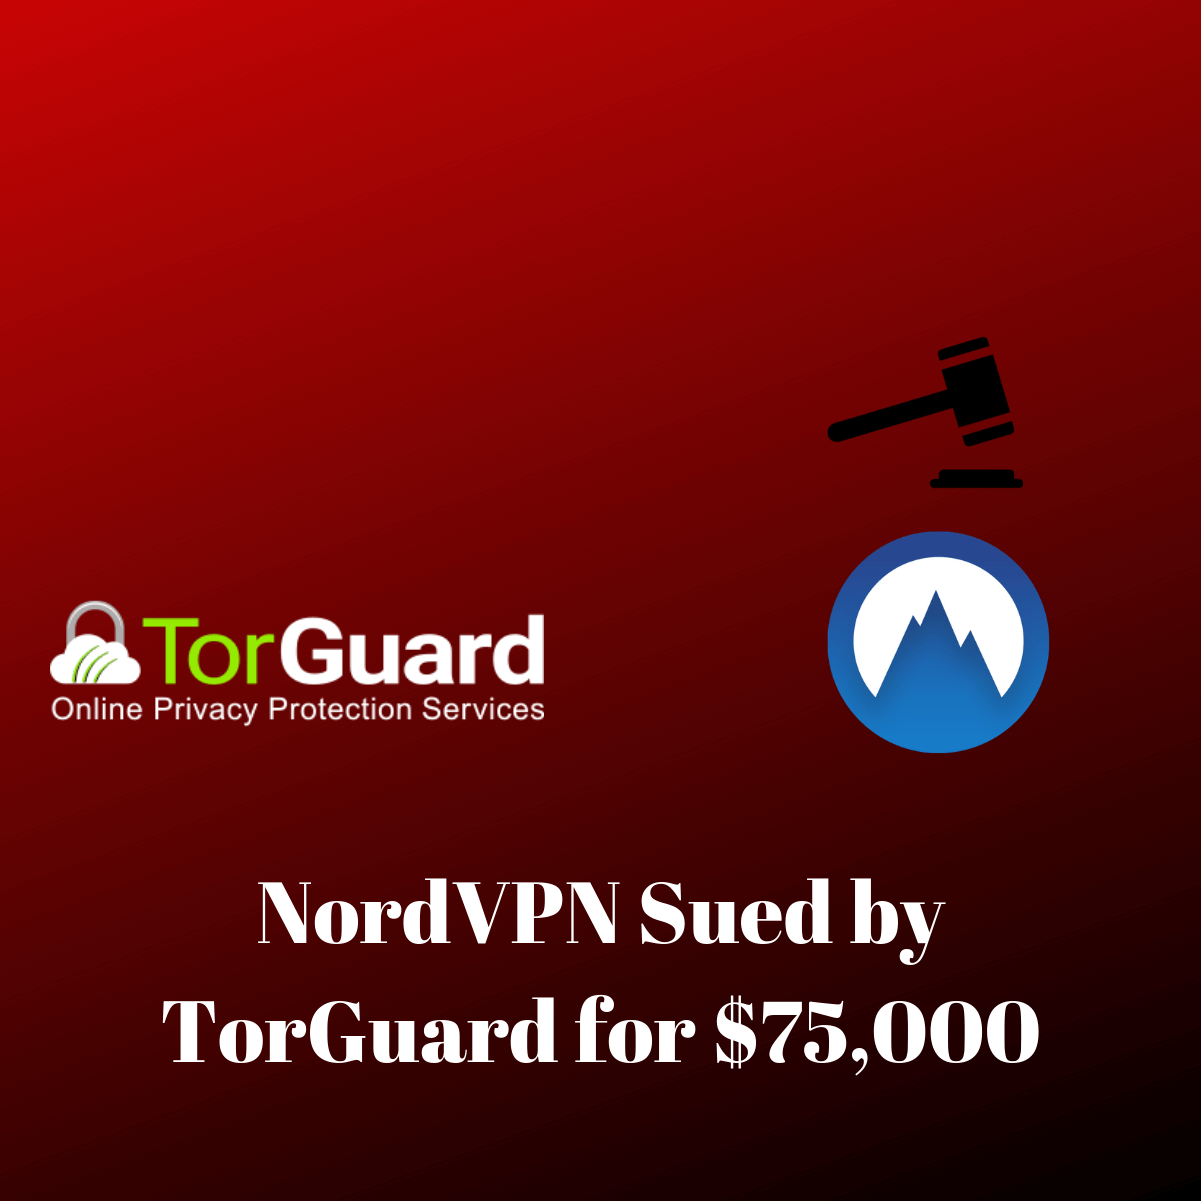 """NordVPN sued by TorGuard for $75,000, alleging """"Blackmail"""""""